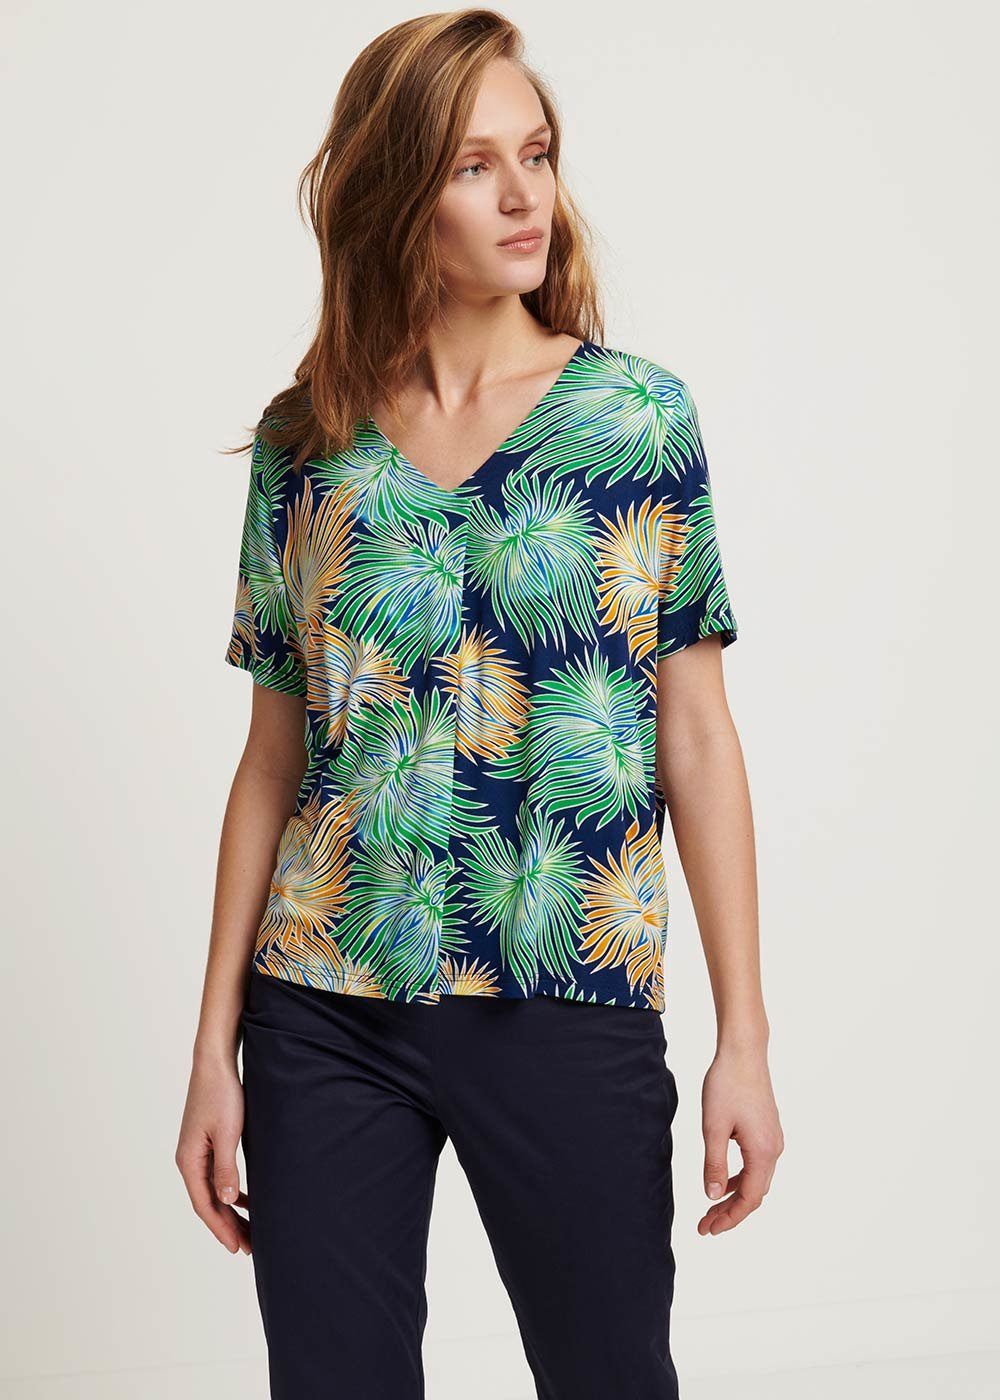 Sainoha T-shirt with tropical pattern - Medium Blue /  Tropical /  Fantasia - Woman